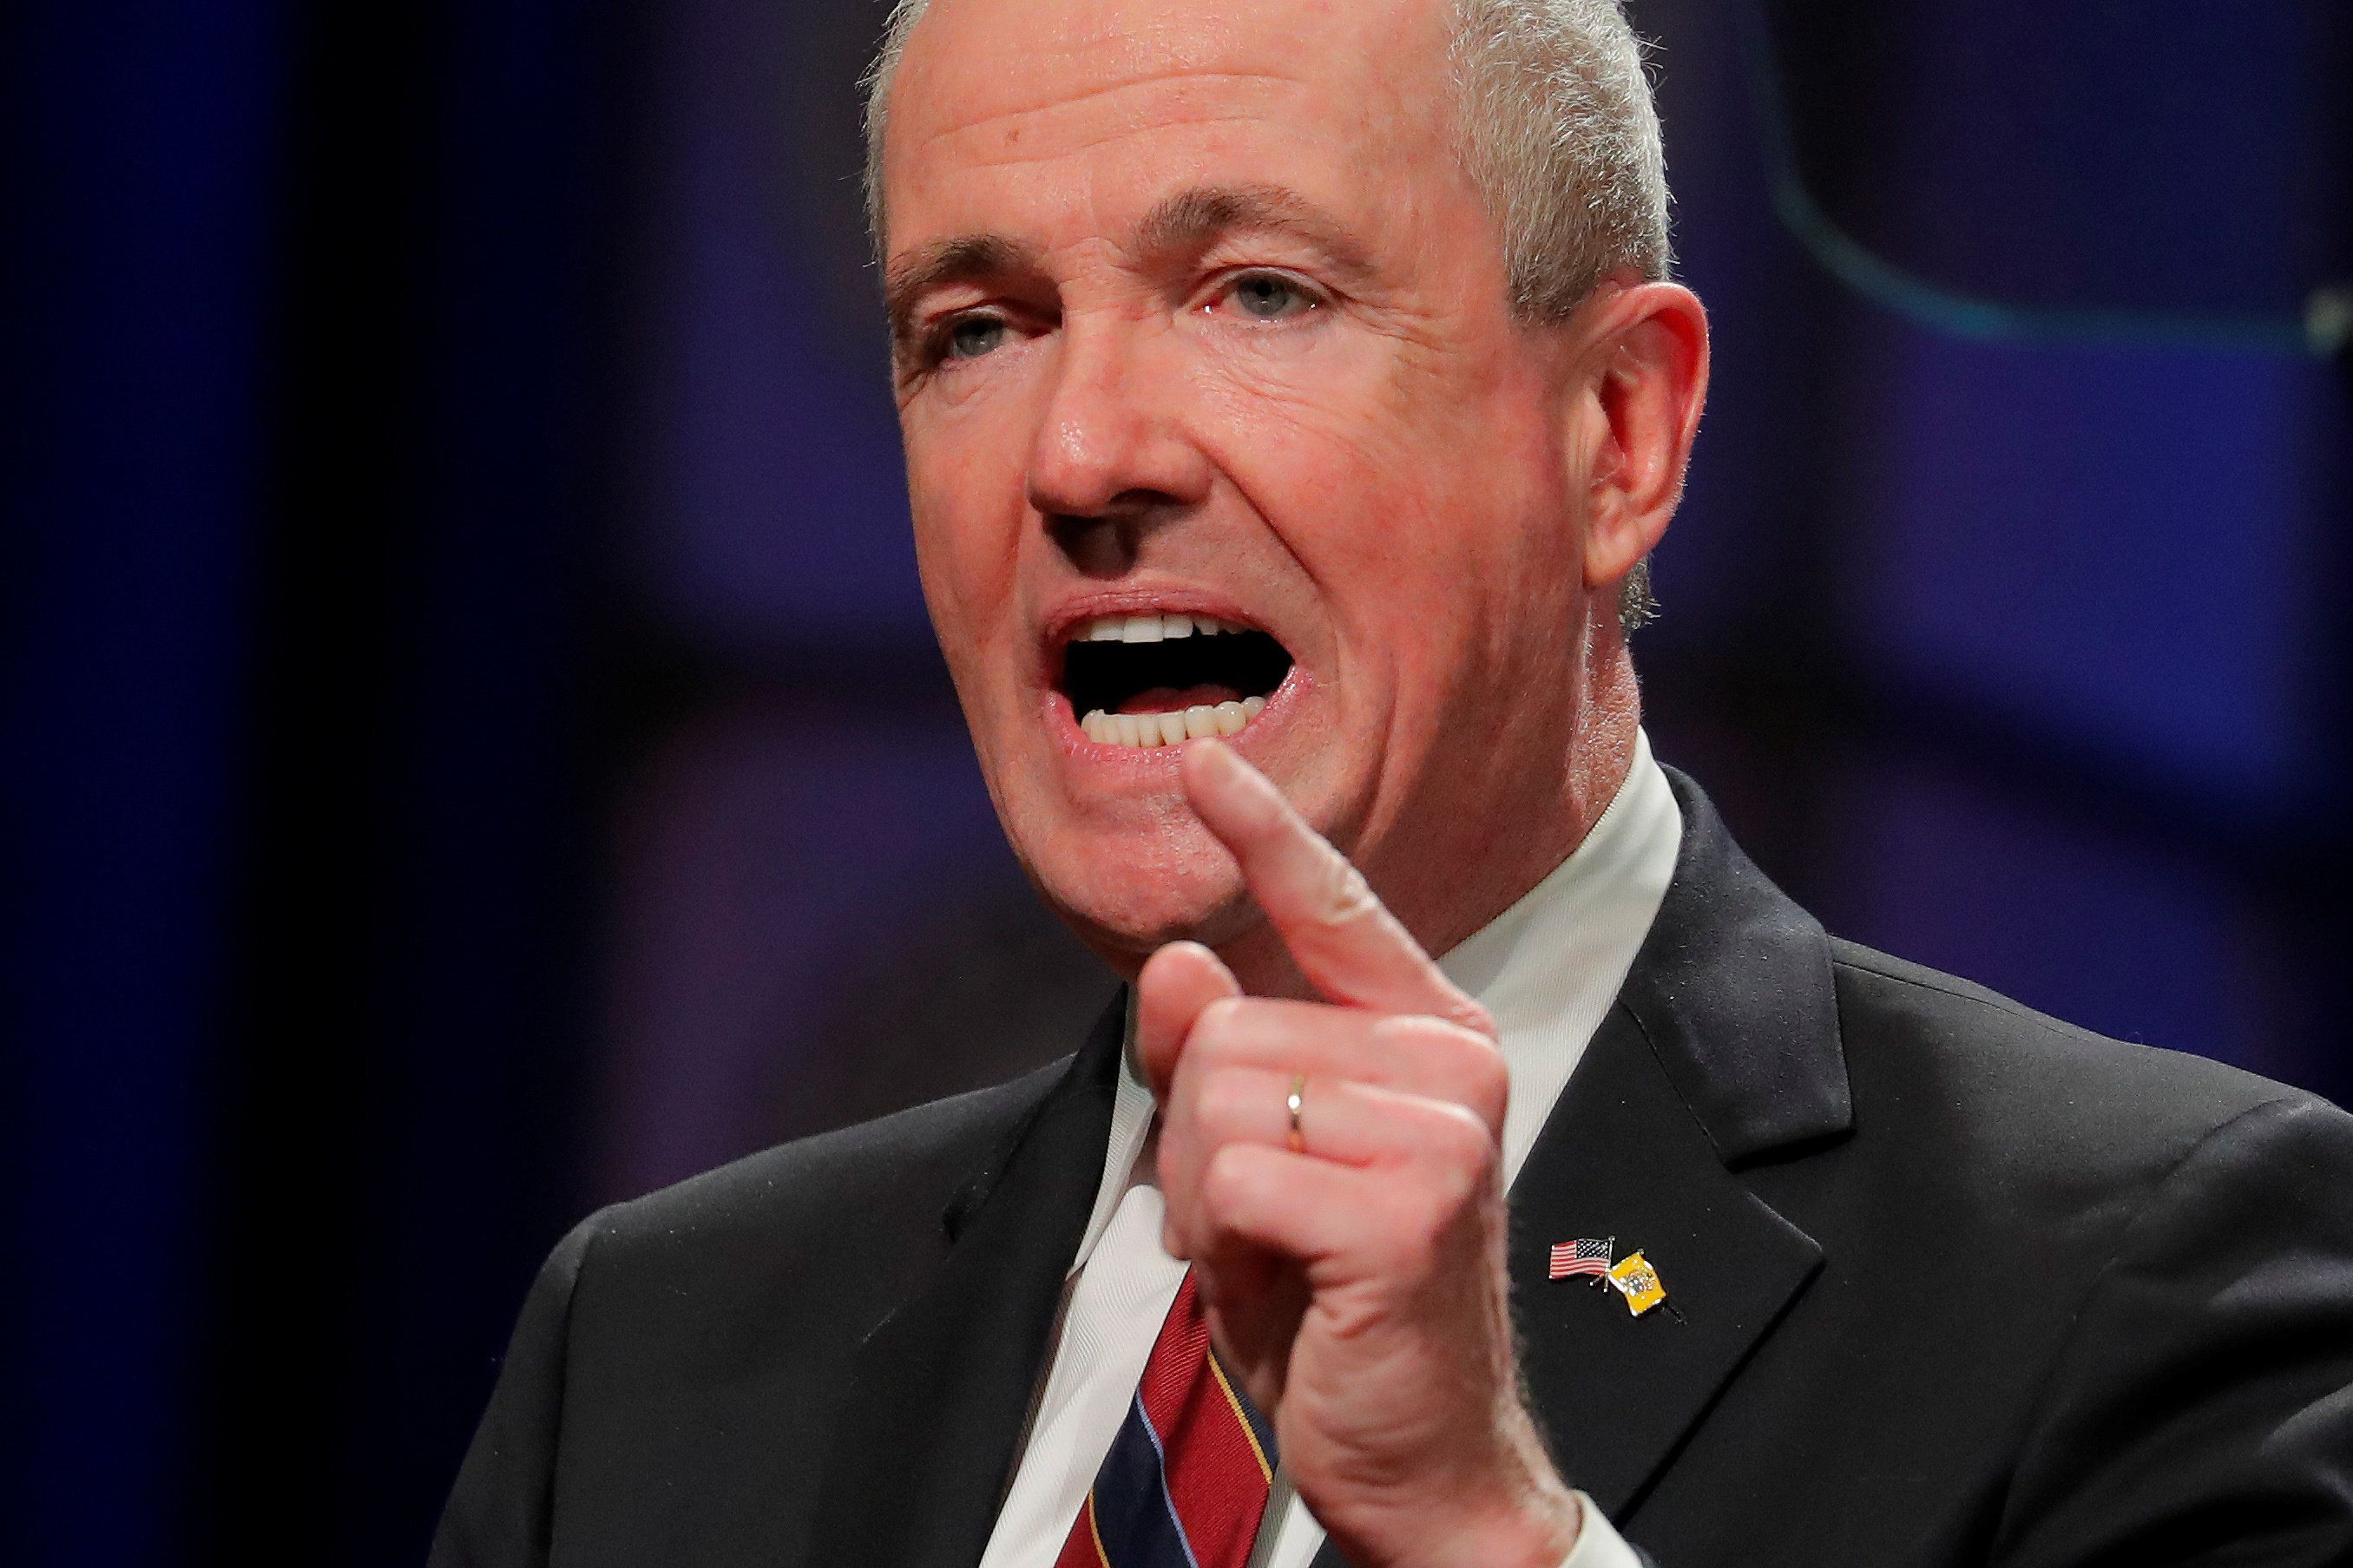 Gov. Phil Murphy is easing political tensions in New Jersey -- well, somewhat, because it's still Jersey.